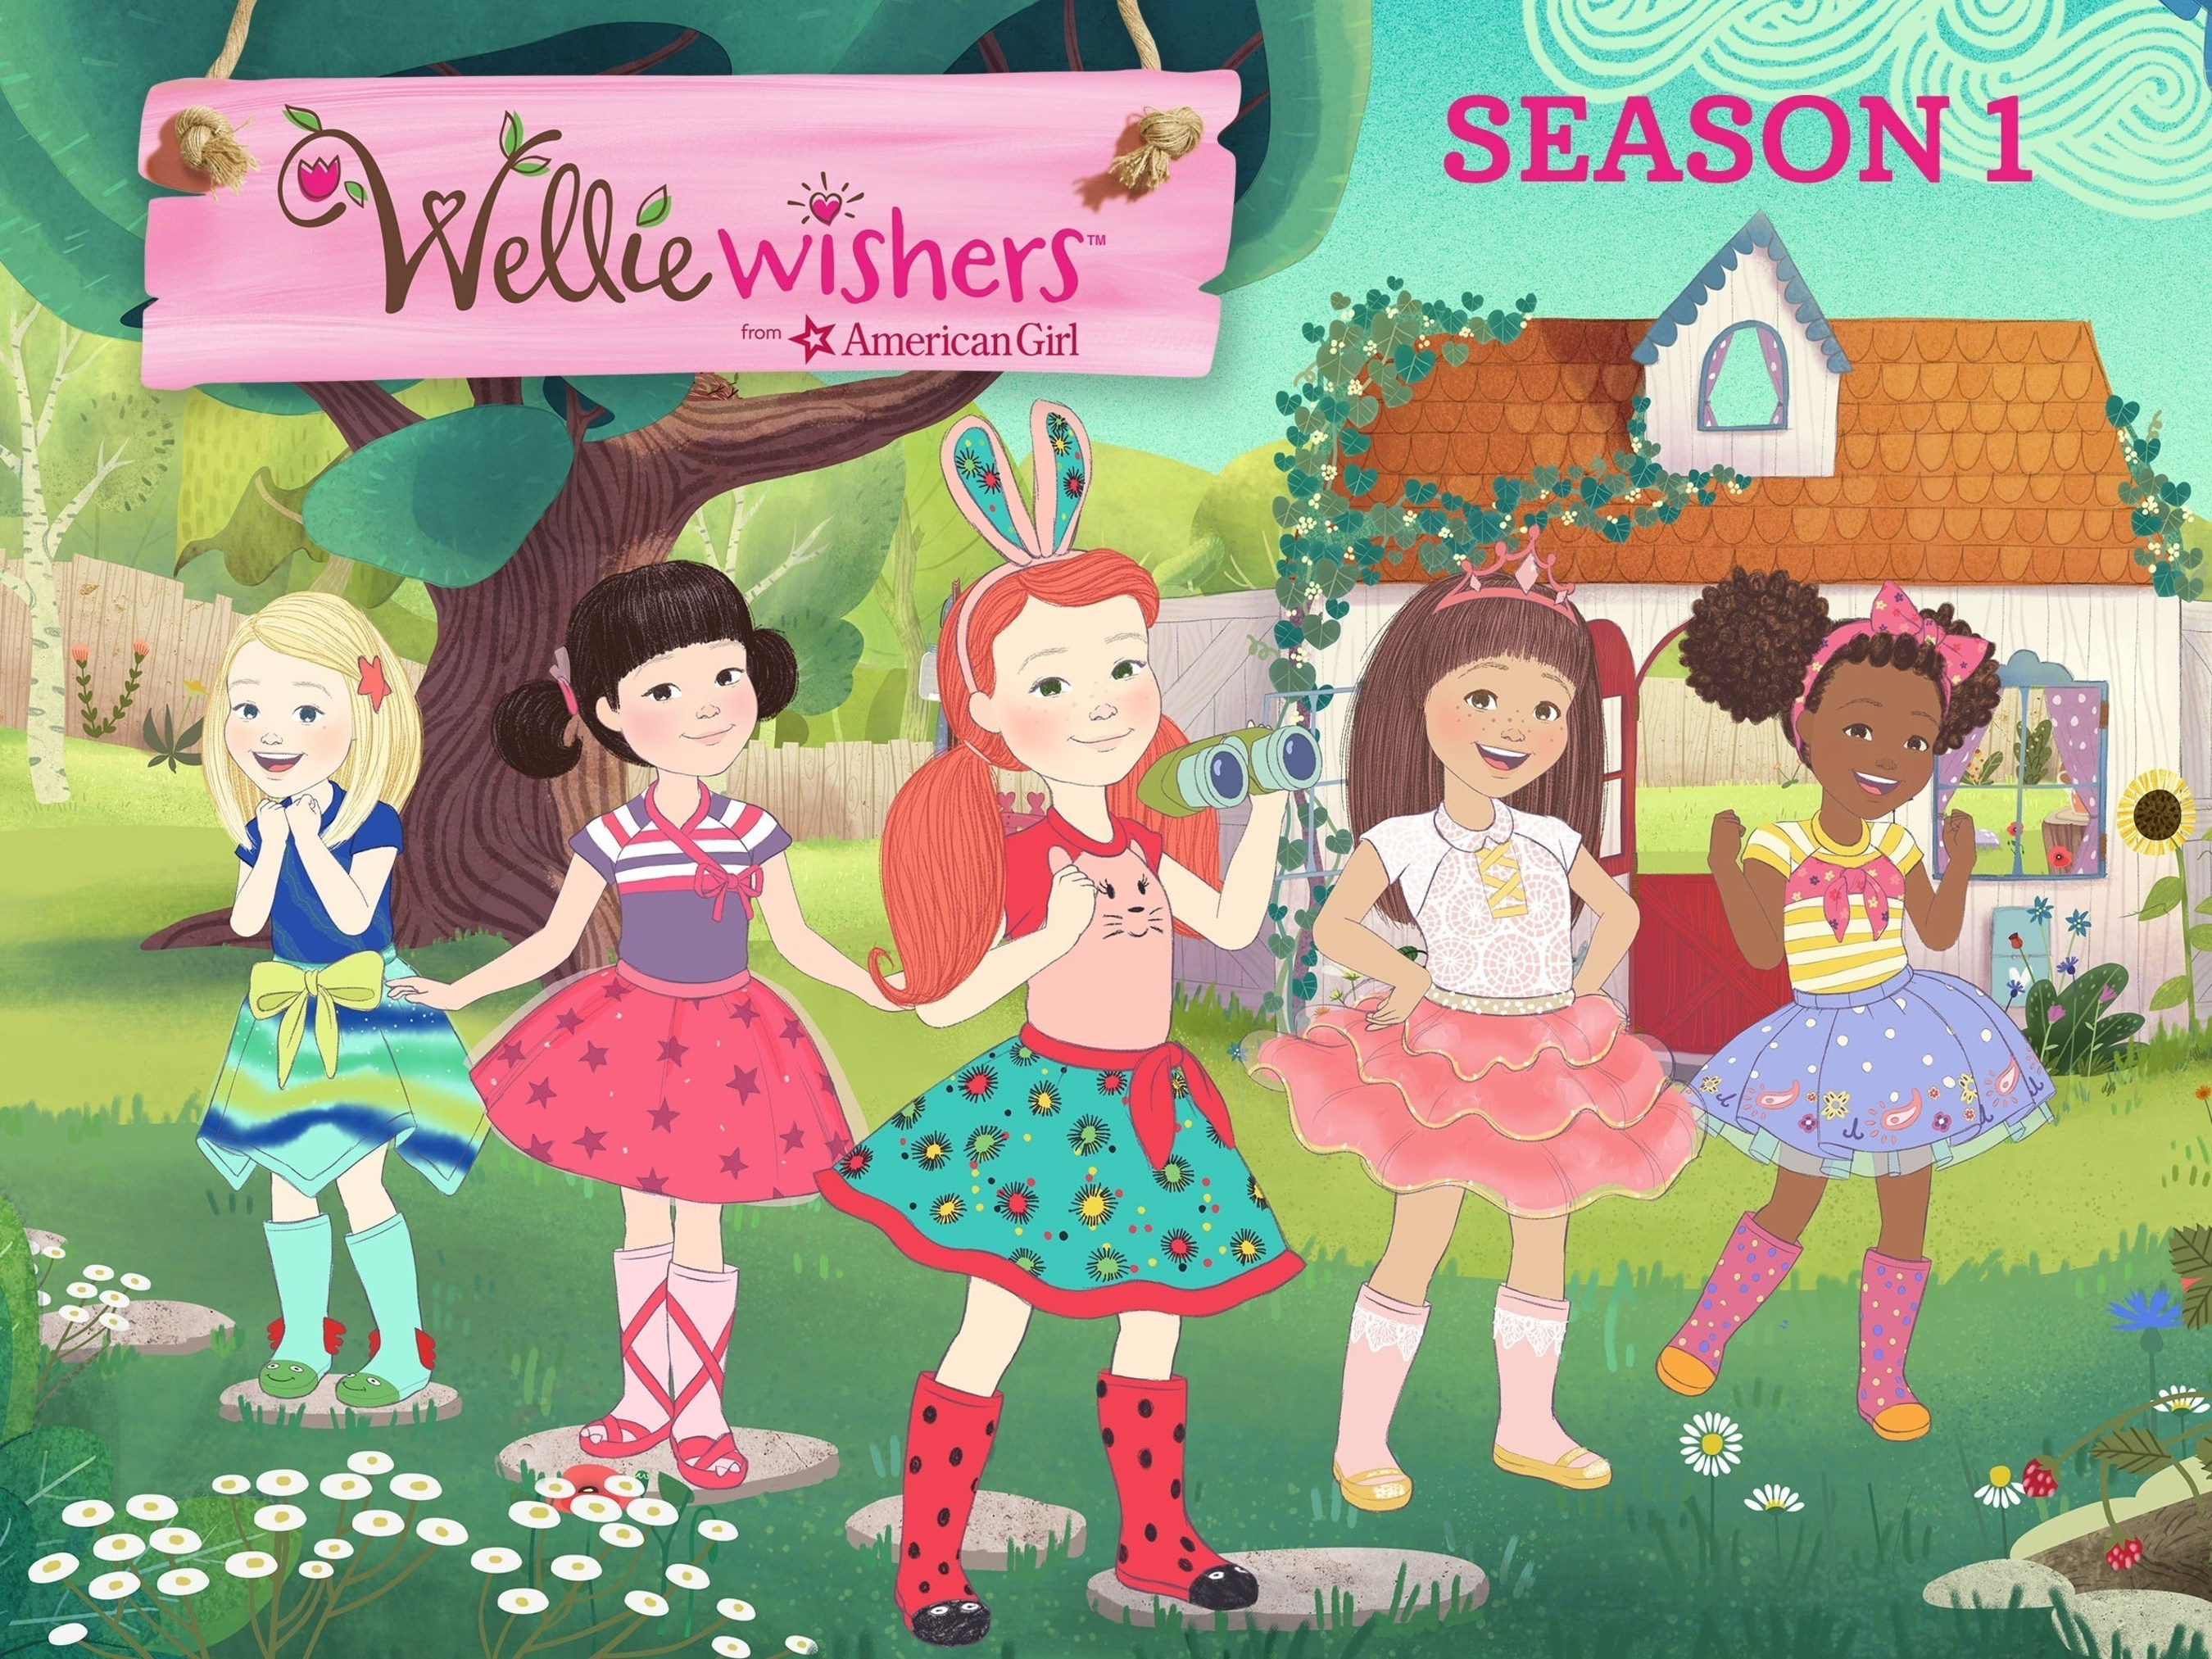 American Girl' Debuts First-Ever Animated Series--Episodes Based On New WellieWishers Line For Younger Girls